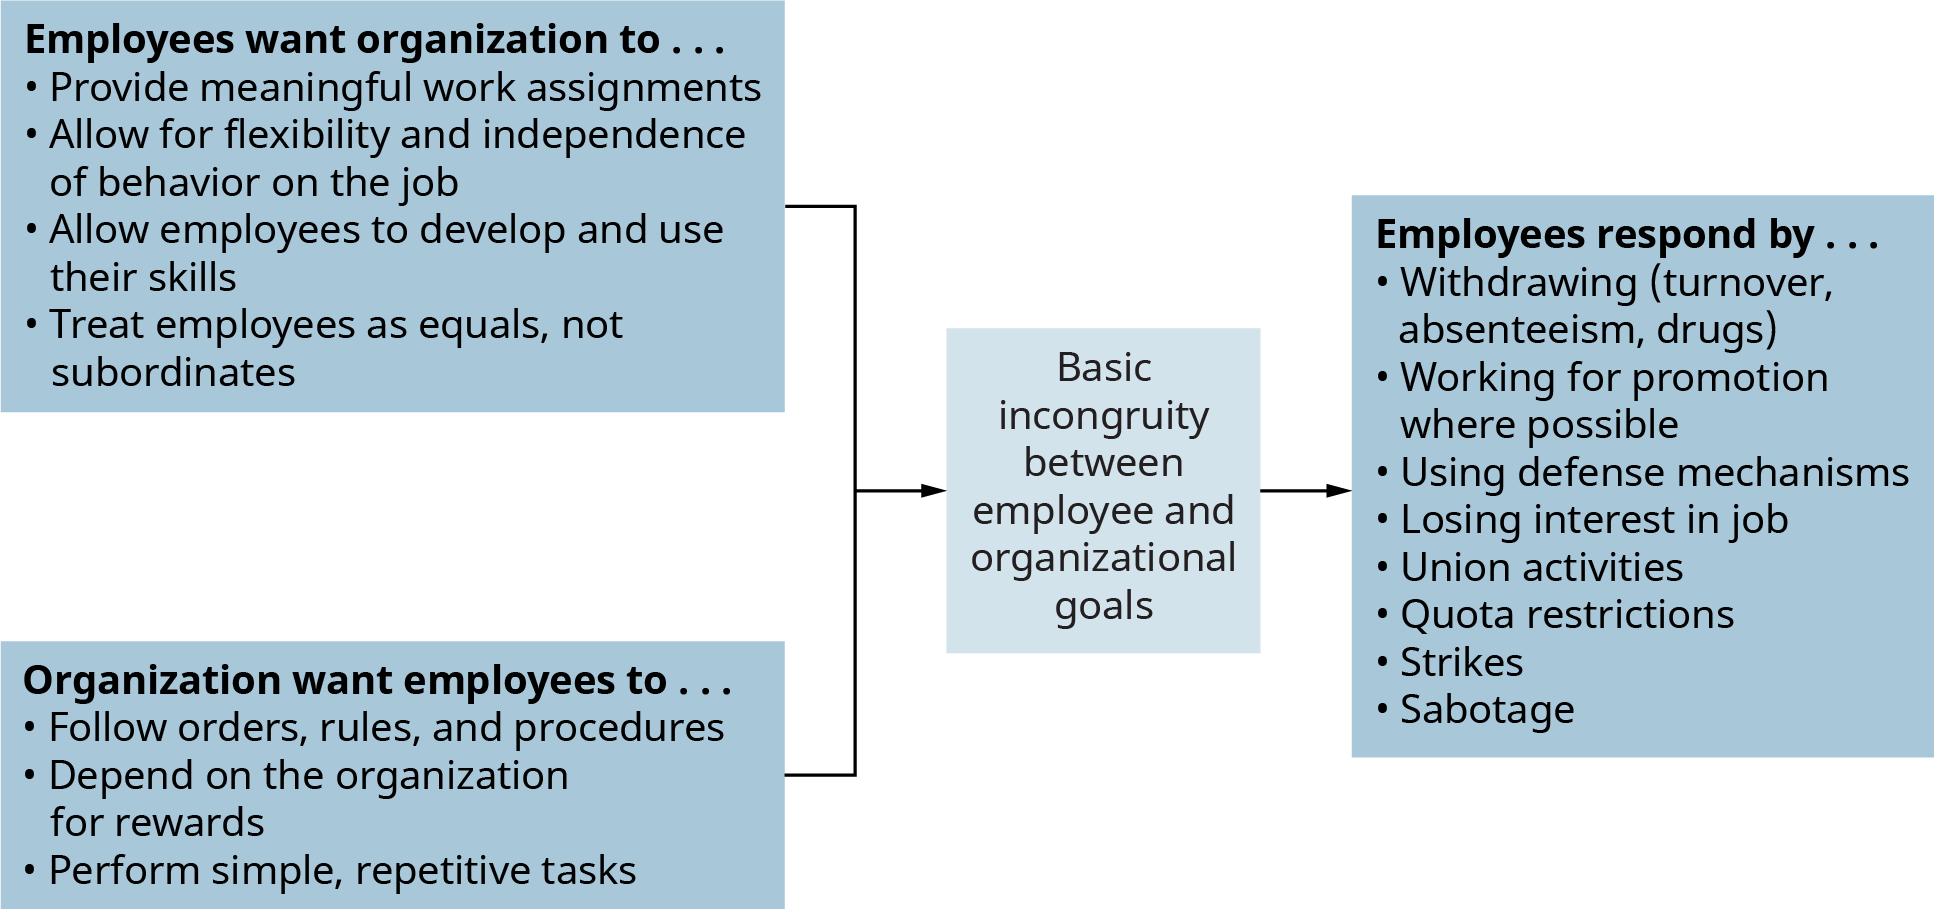 A diagram illustrates the basic incongruity between employee and organizational goals.